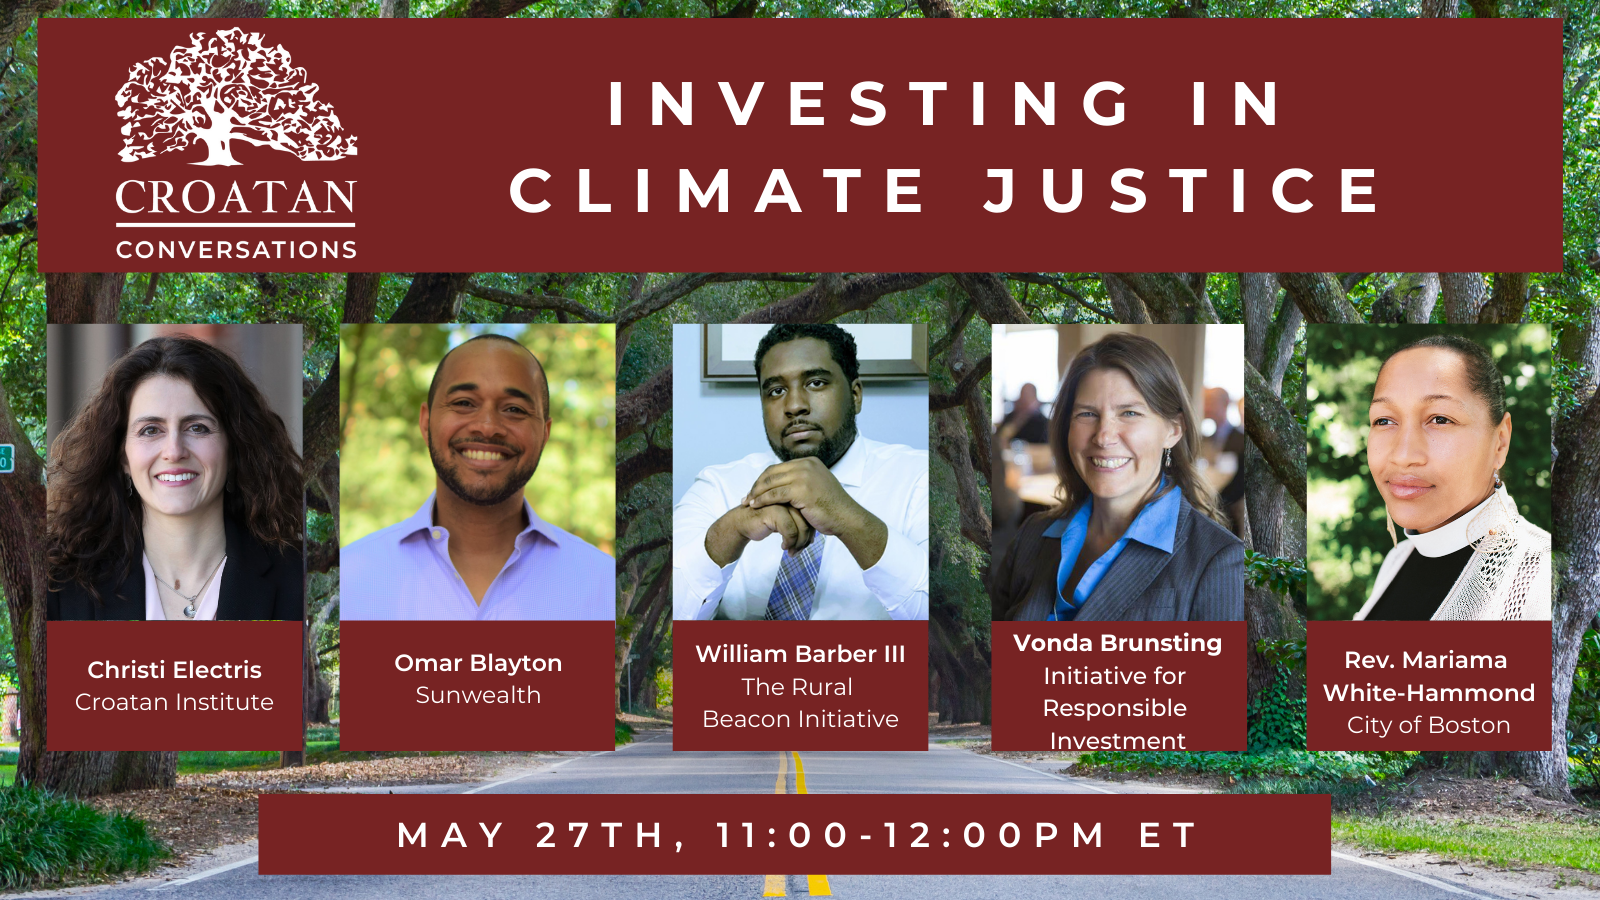 Investing in Climate Justice